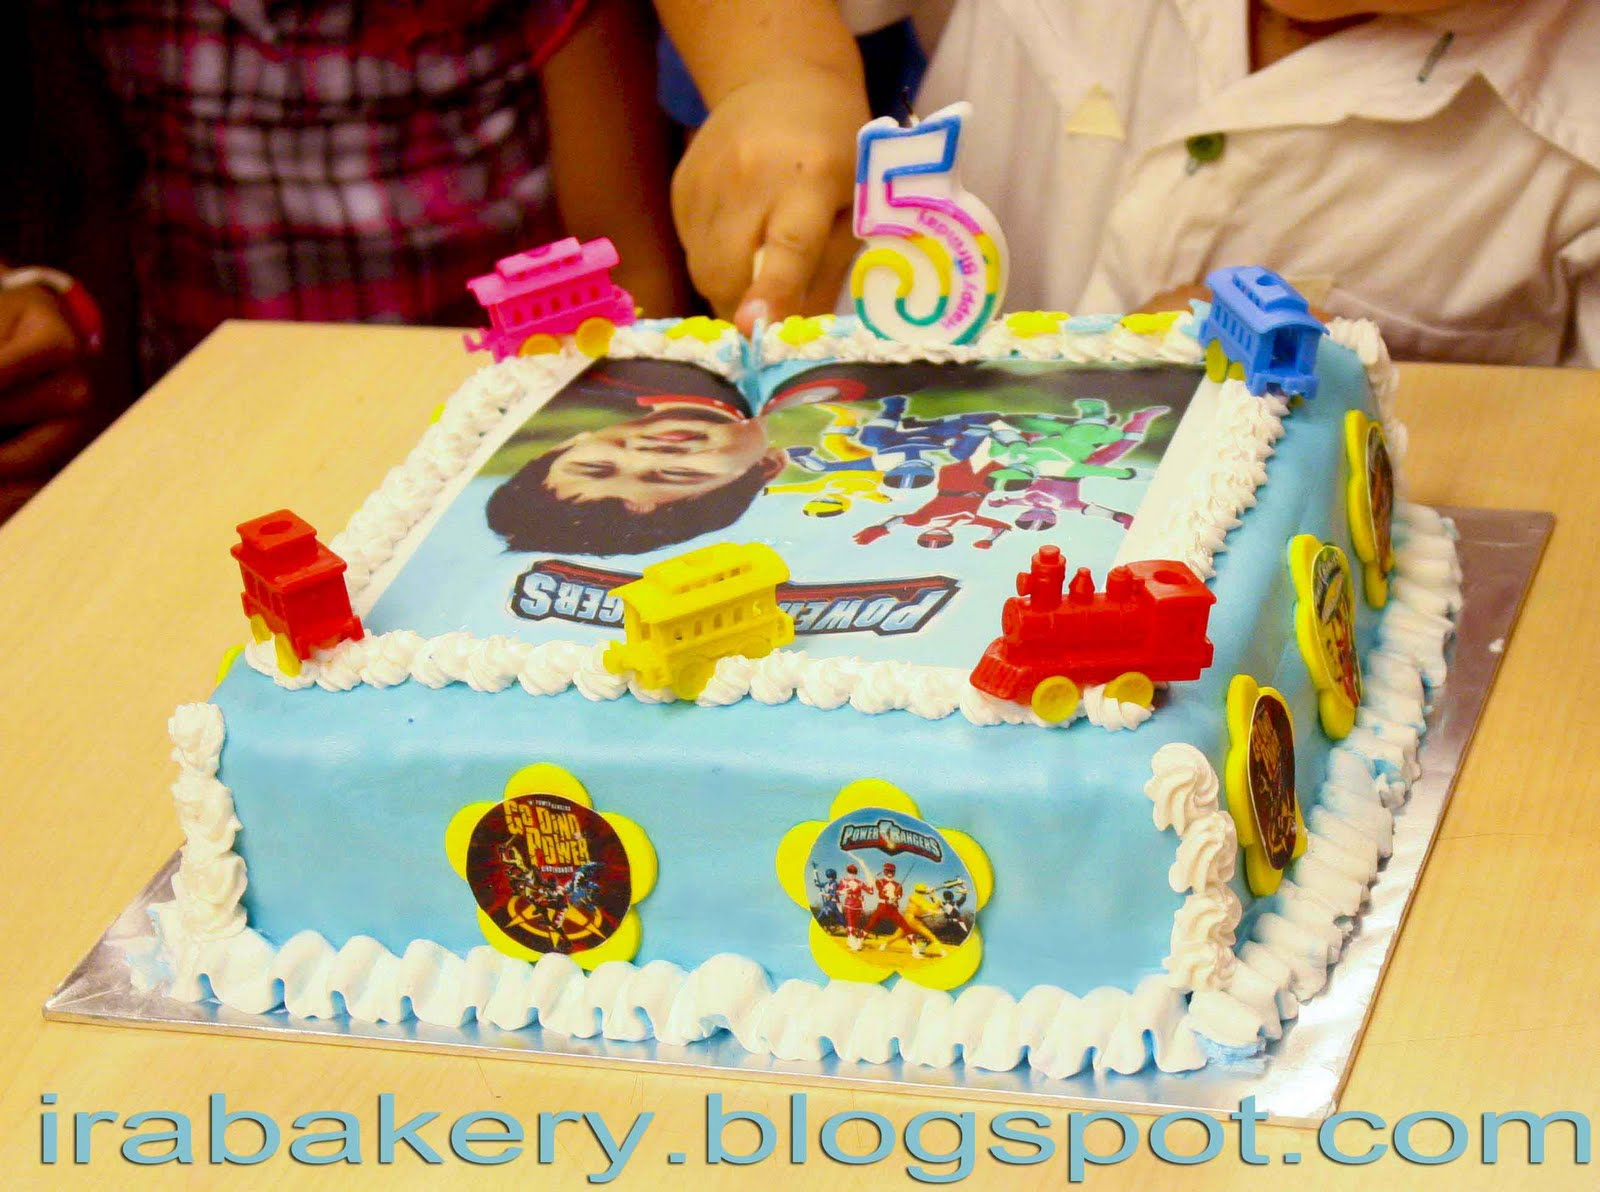 Birthday Cake Images Hq : Deco Cakes, Cupcakes, Cheese cake & Kek Lapis Sarawak in ...